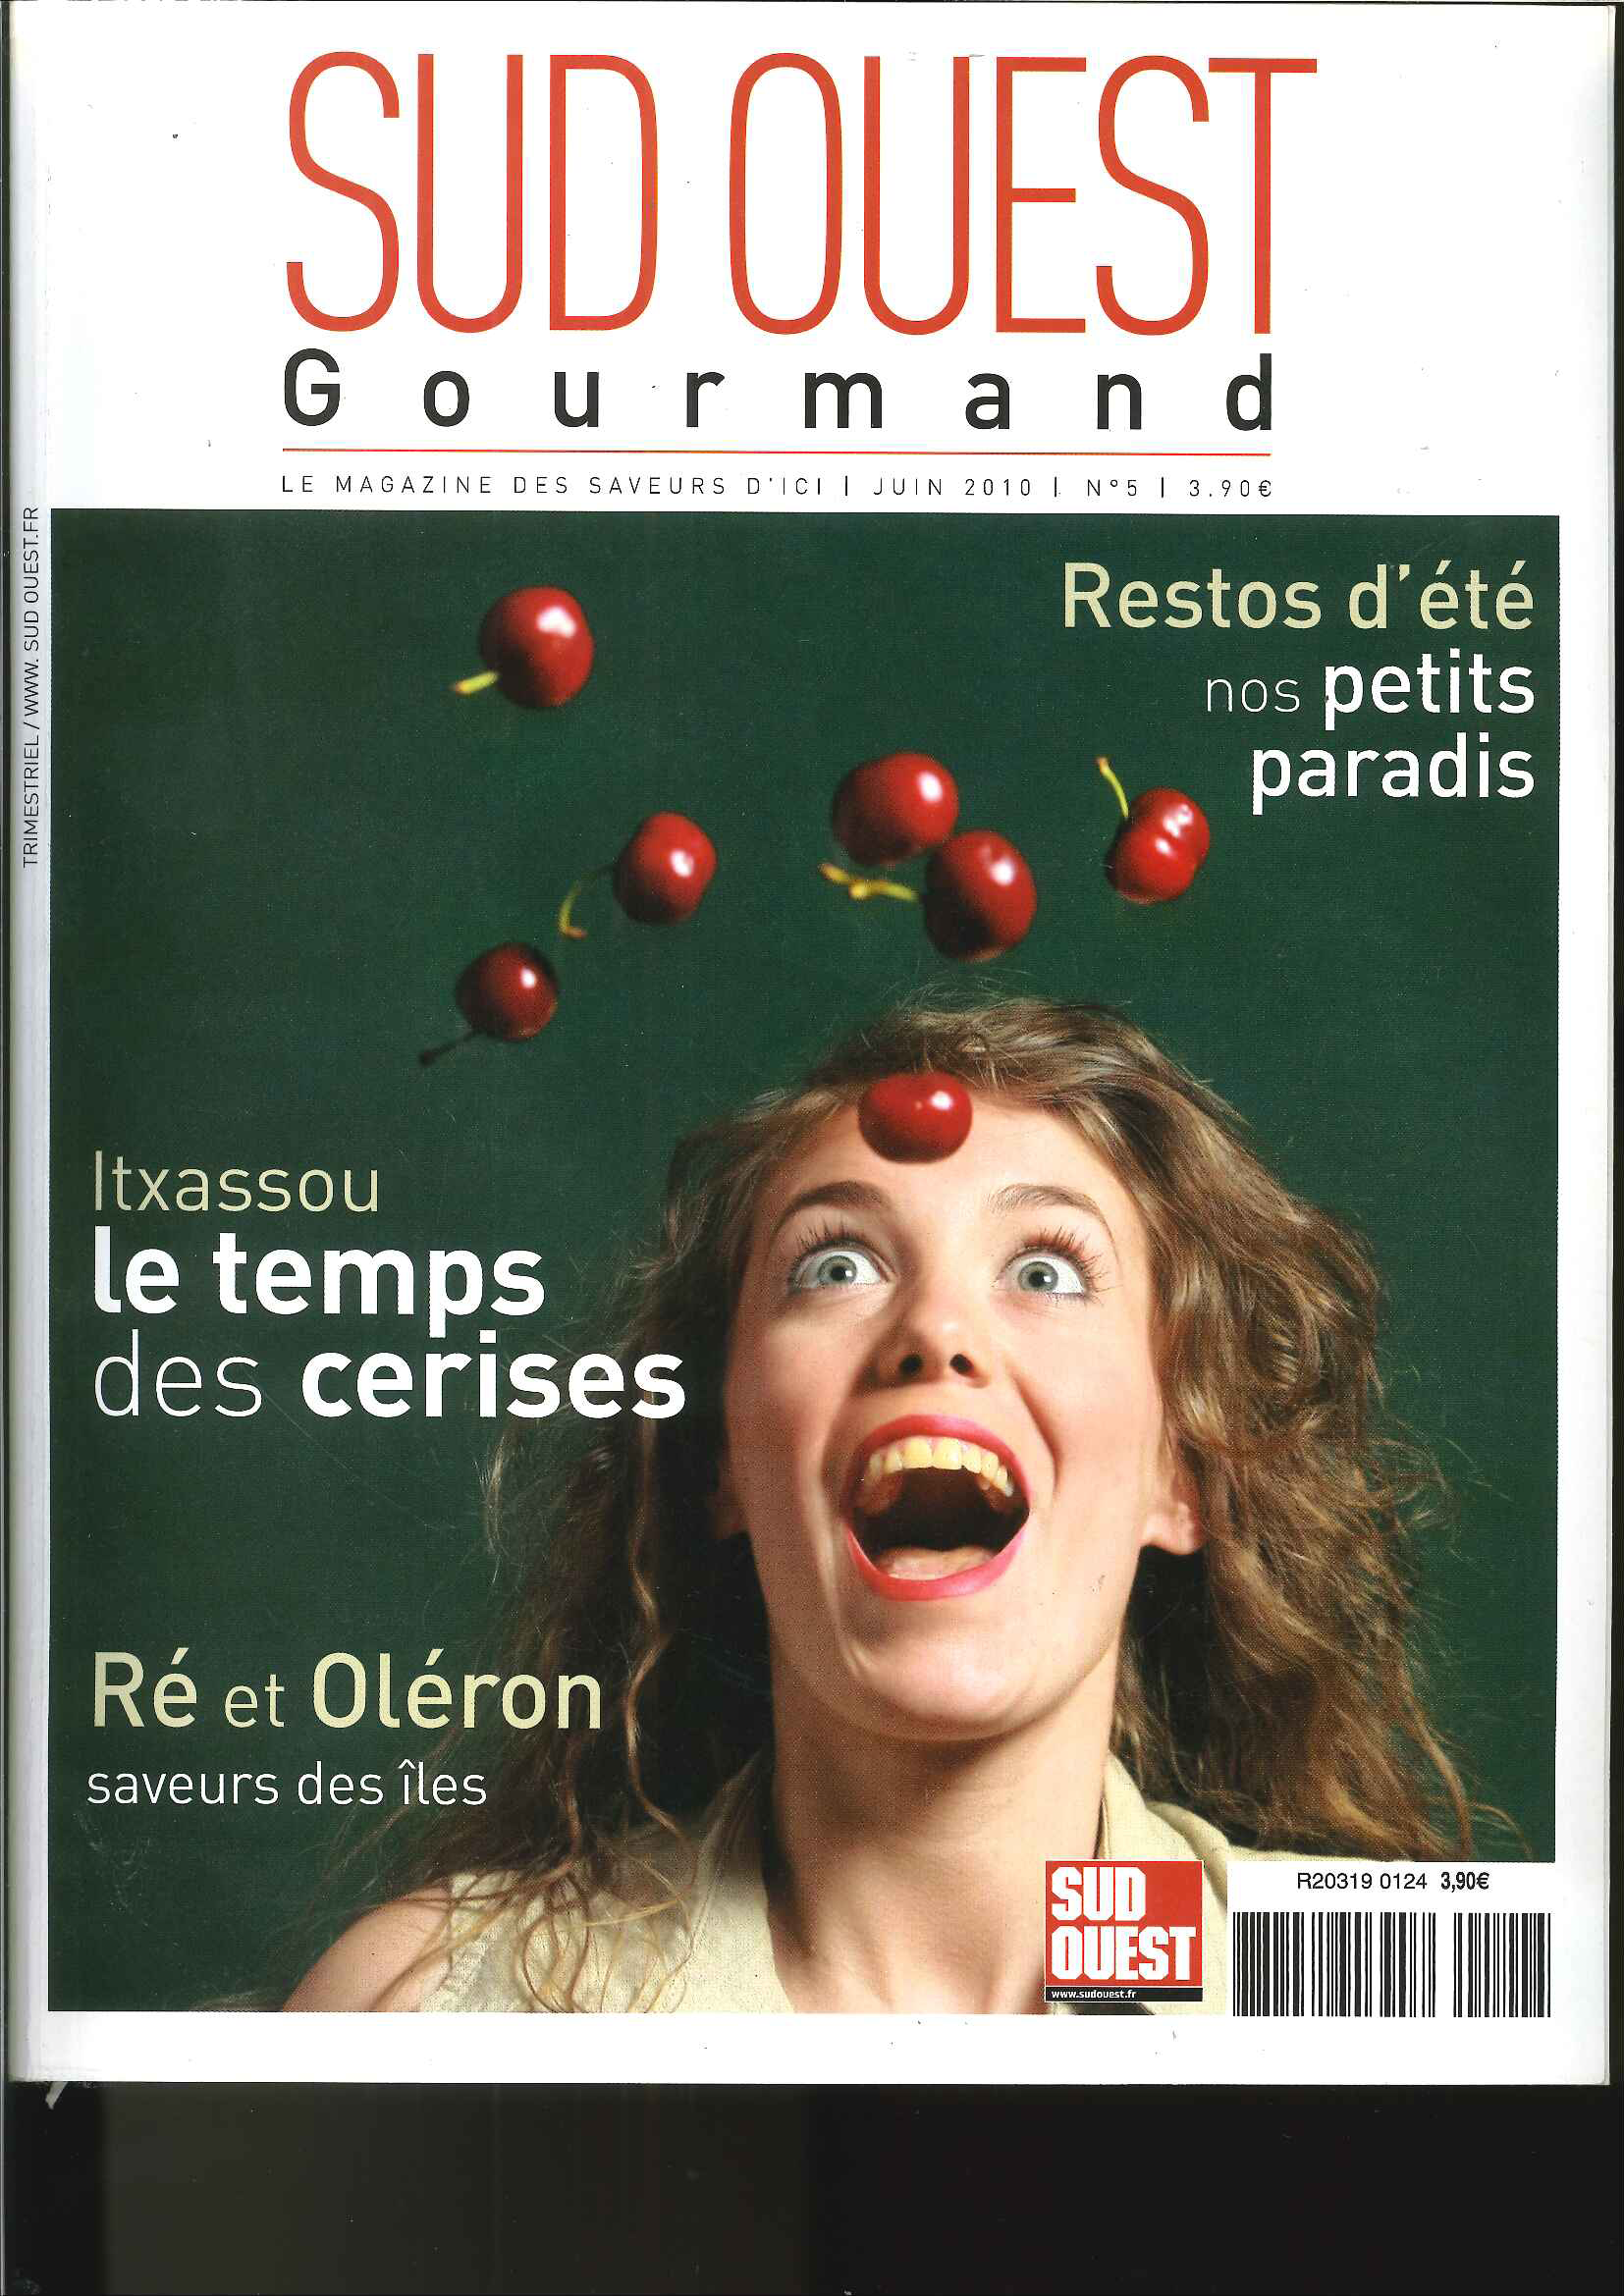 Sud Ouest Gourmand n°5 – Juin 2010